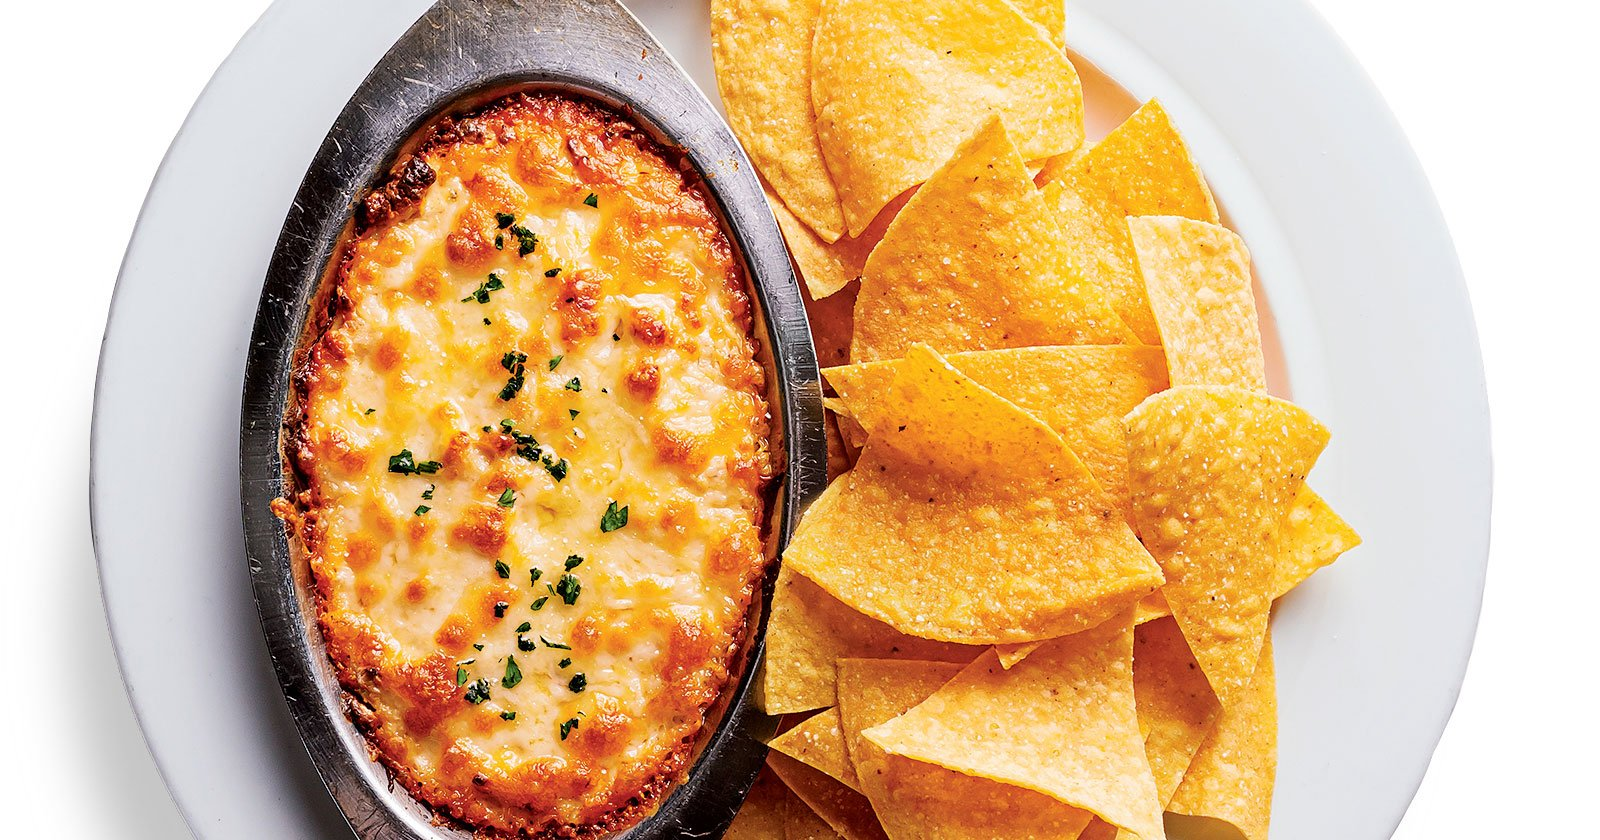 Recipe: How to Make Hank's Oyster Bar's Crab Dip